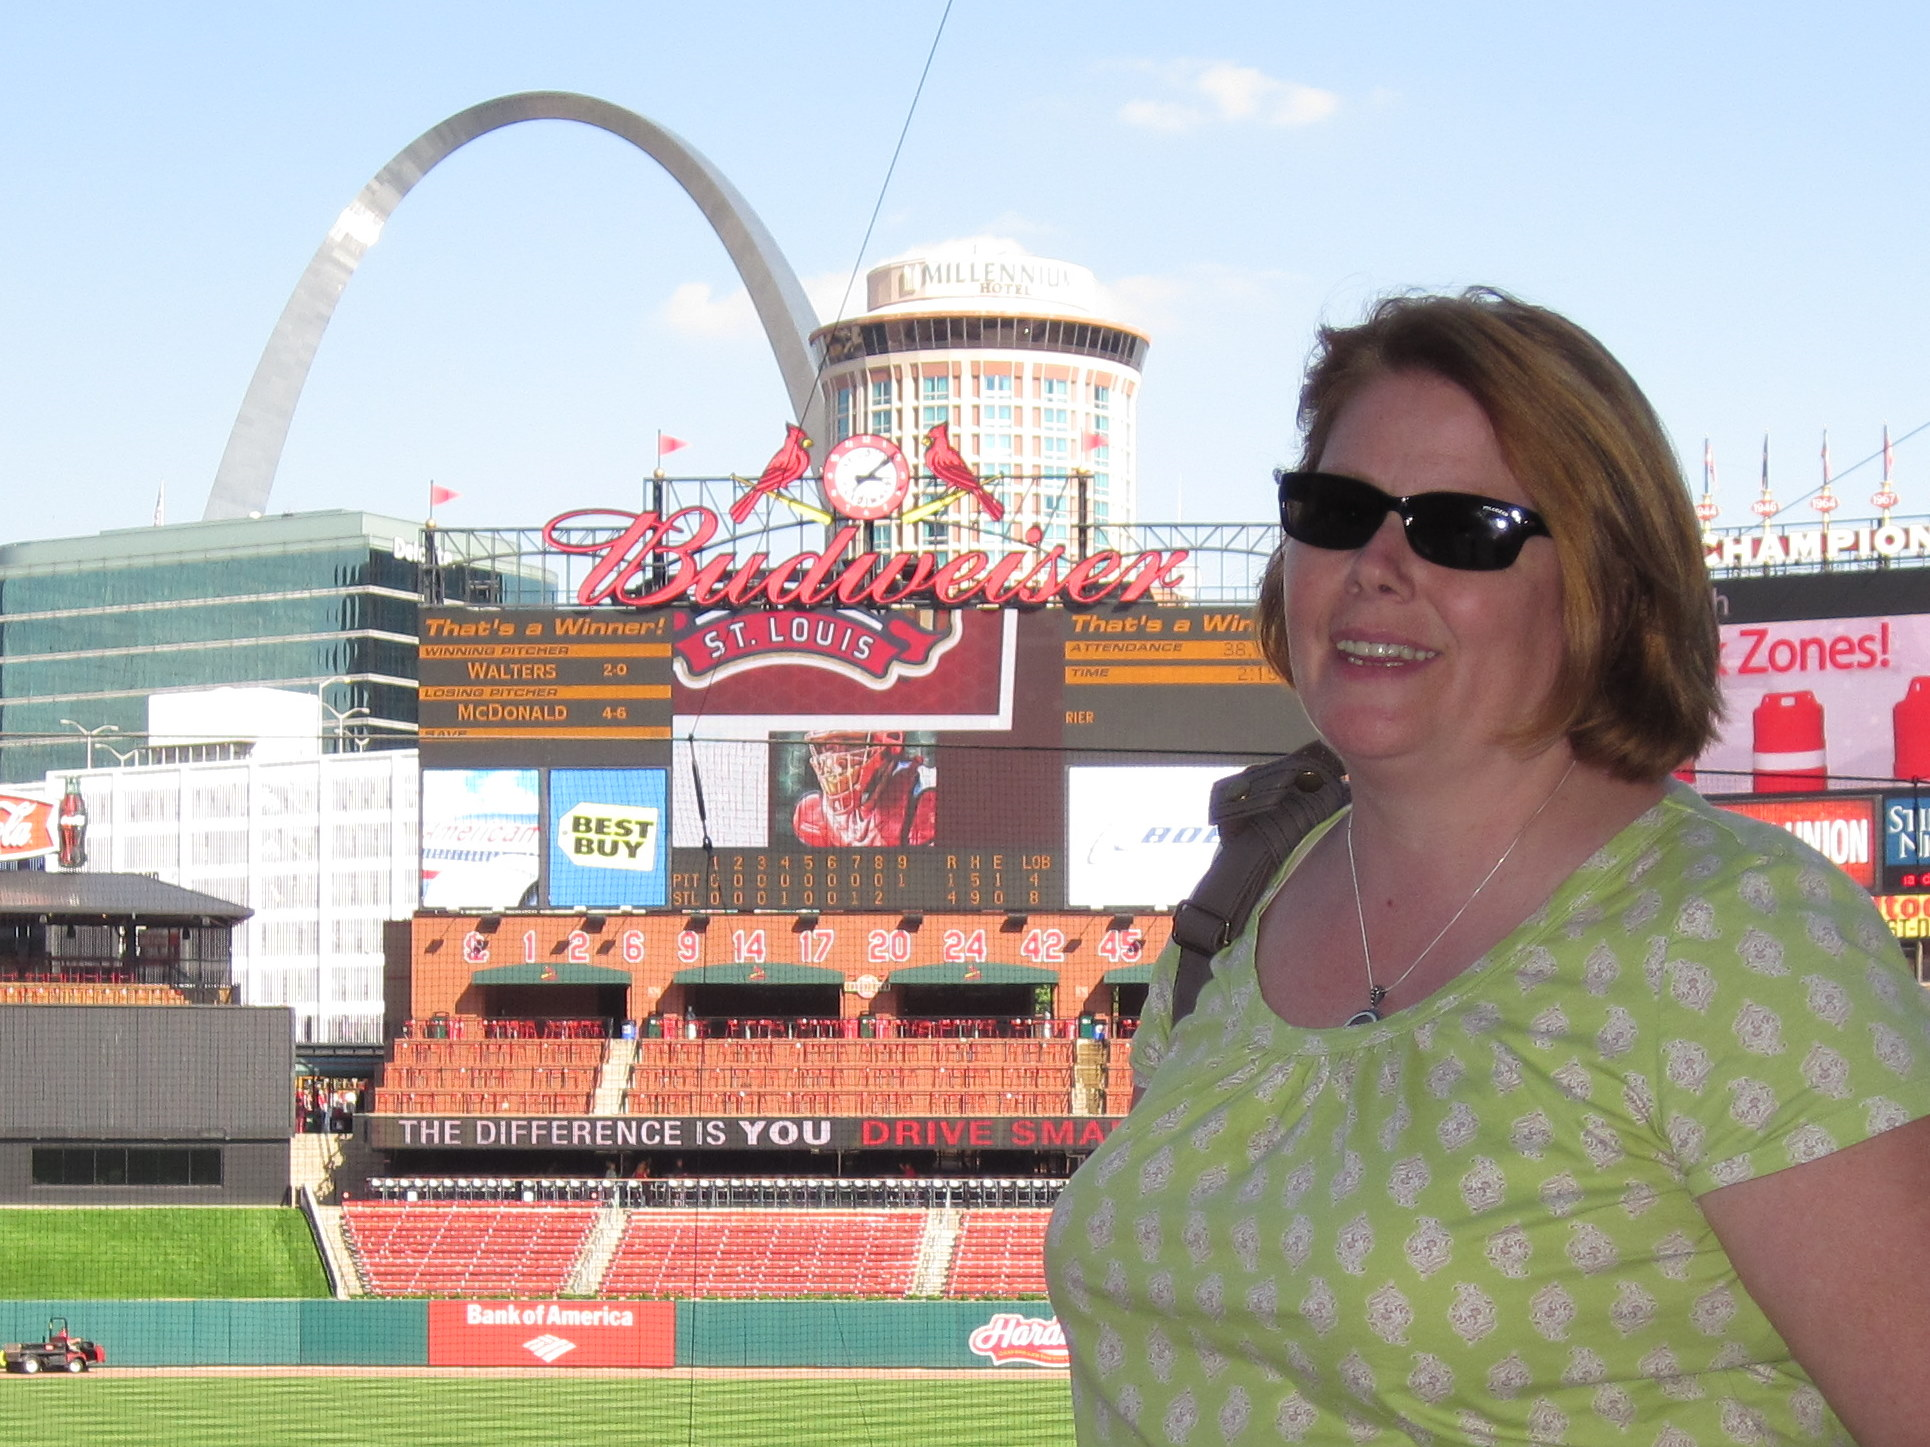 JPlovesCOTTON at Busch Stadium